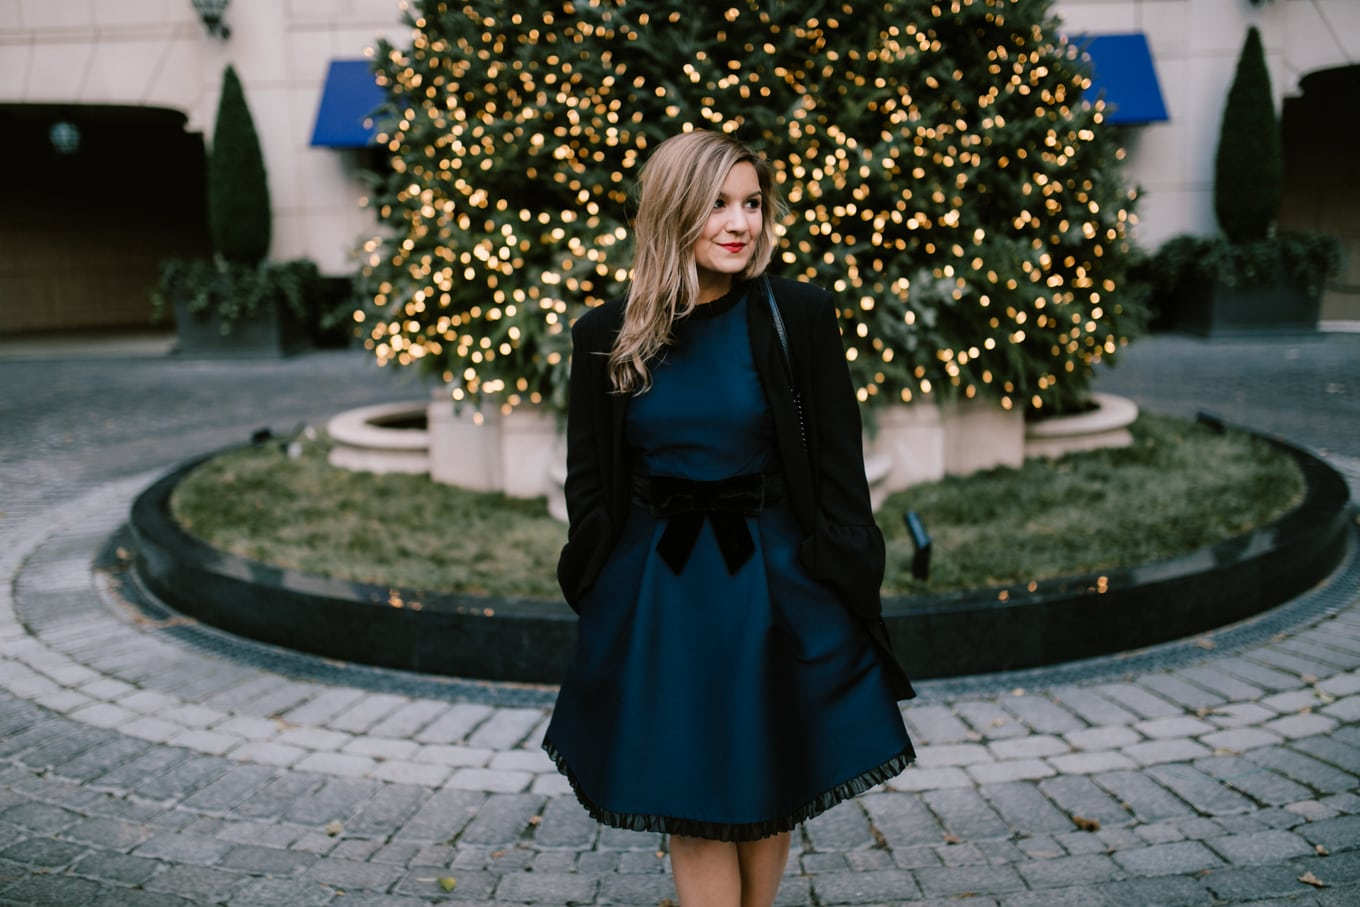 Holiday dress: Kate Spade velvet bow dress